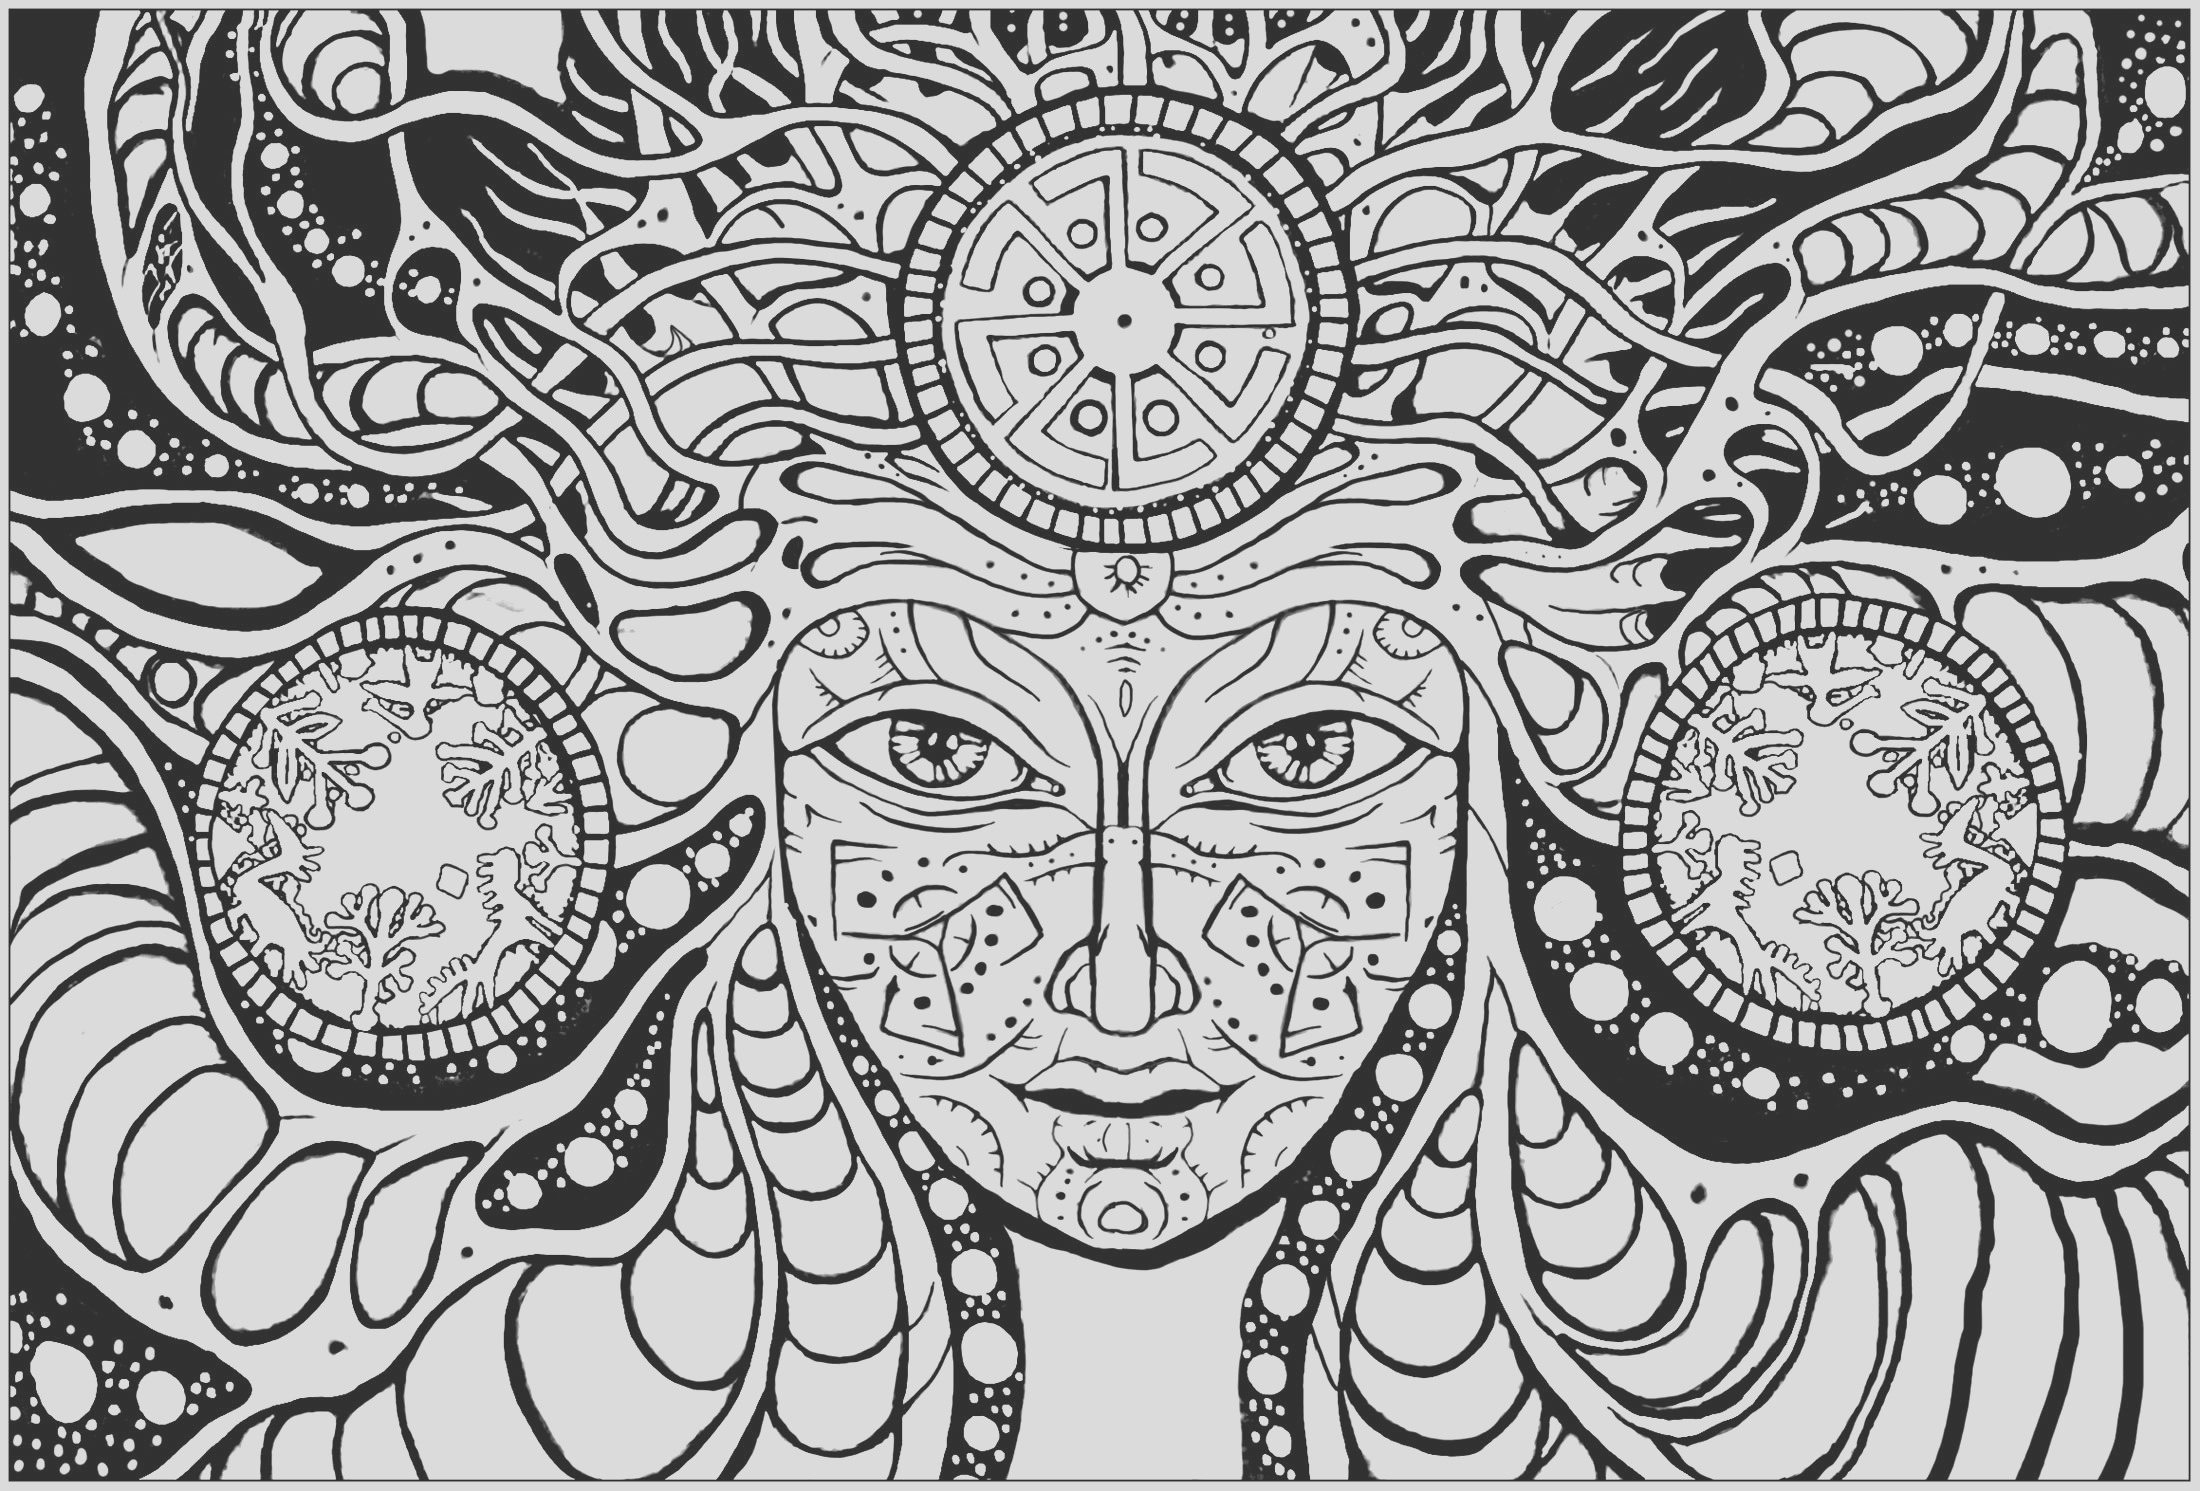 image=psychedelic coloring page psychedelic woman 1